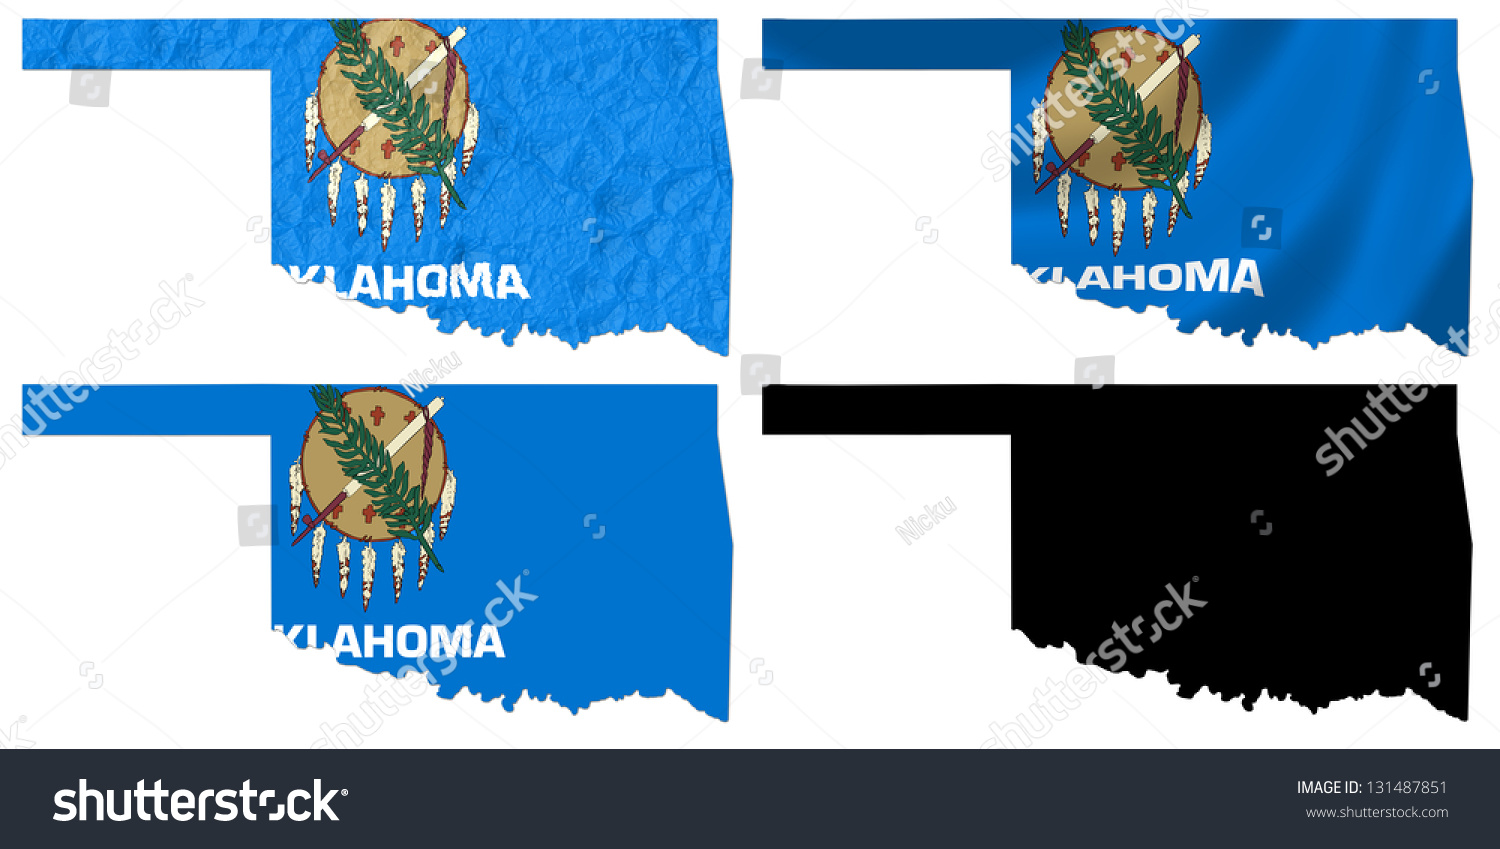 us oklahoma state flag over map collage